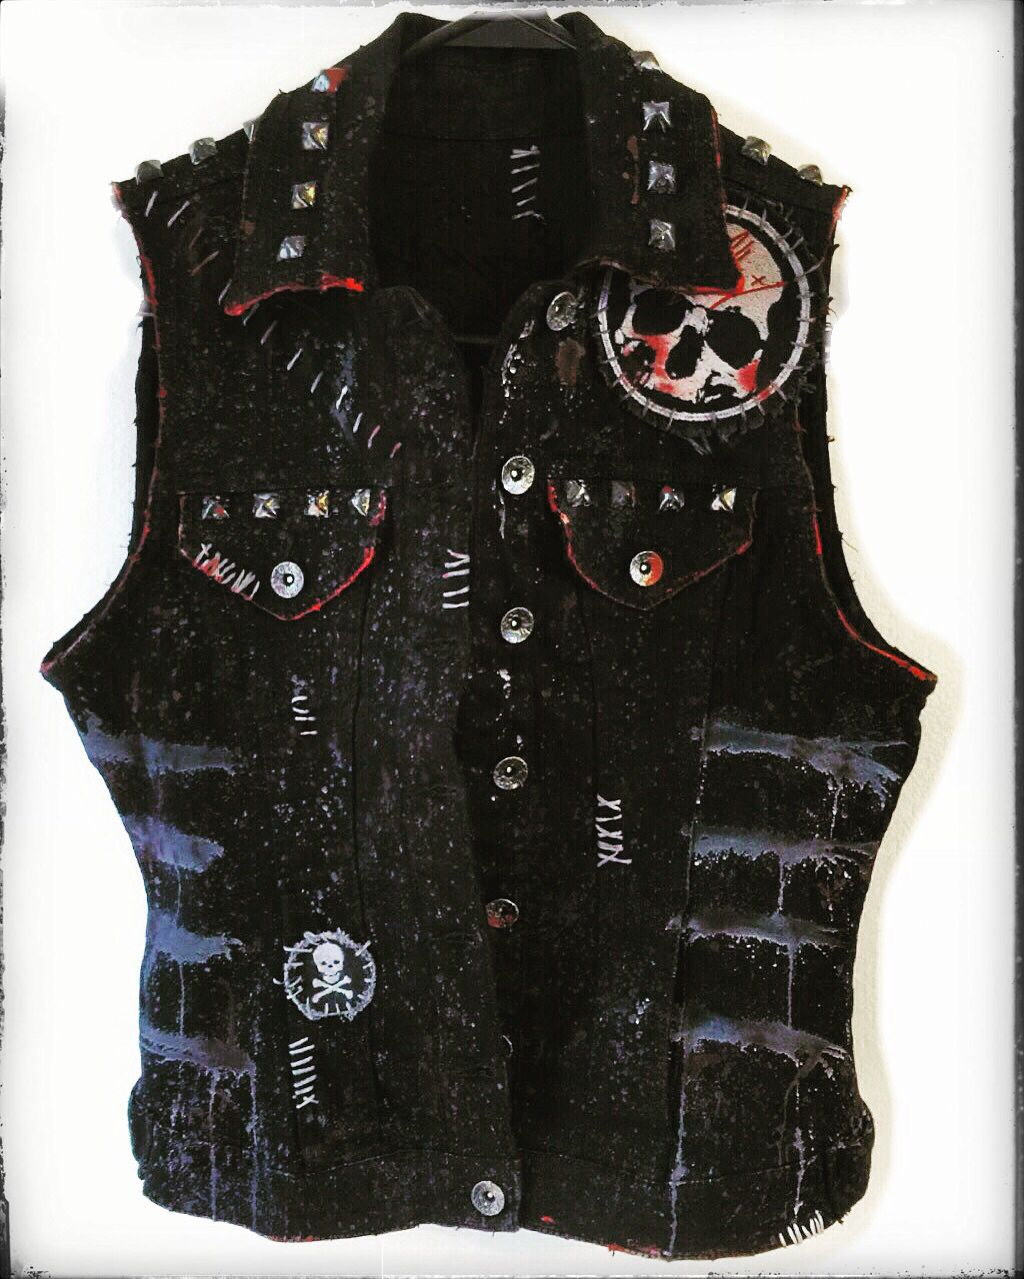 Distressed vest from Chad Cherry Clothing. Rocker vest ...